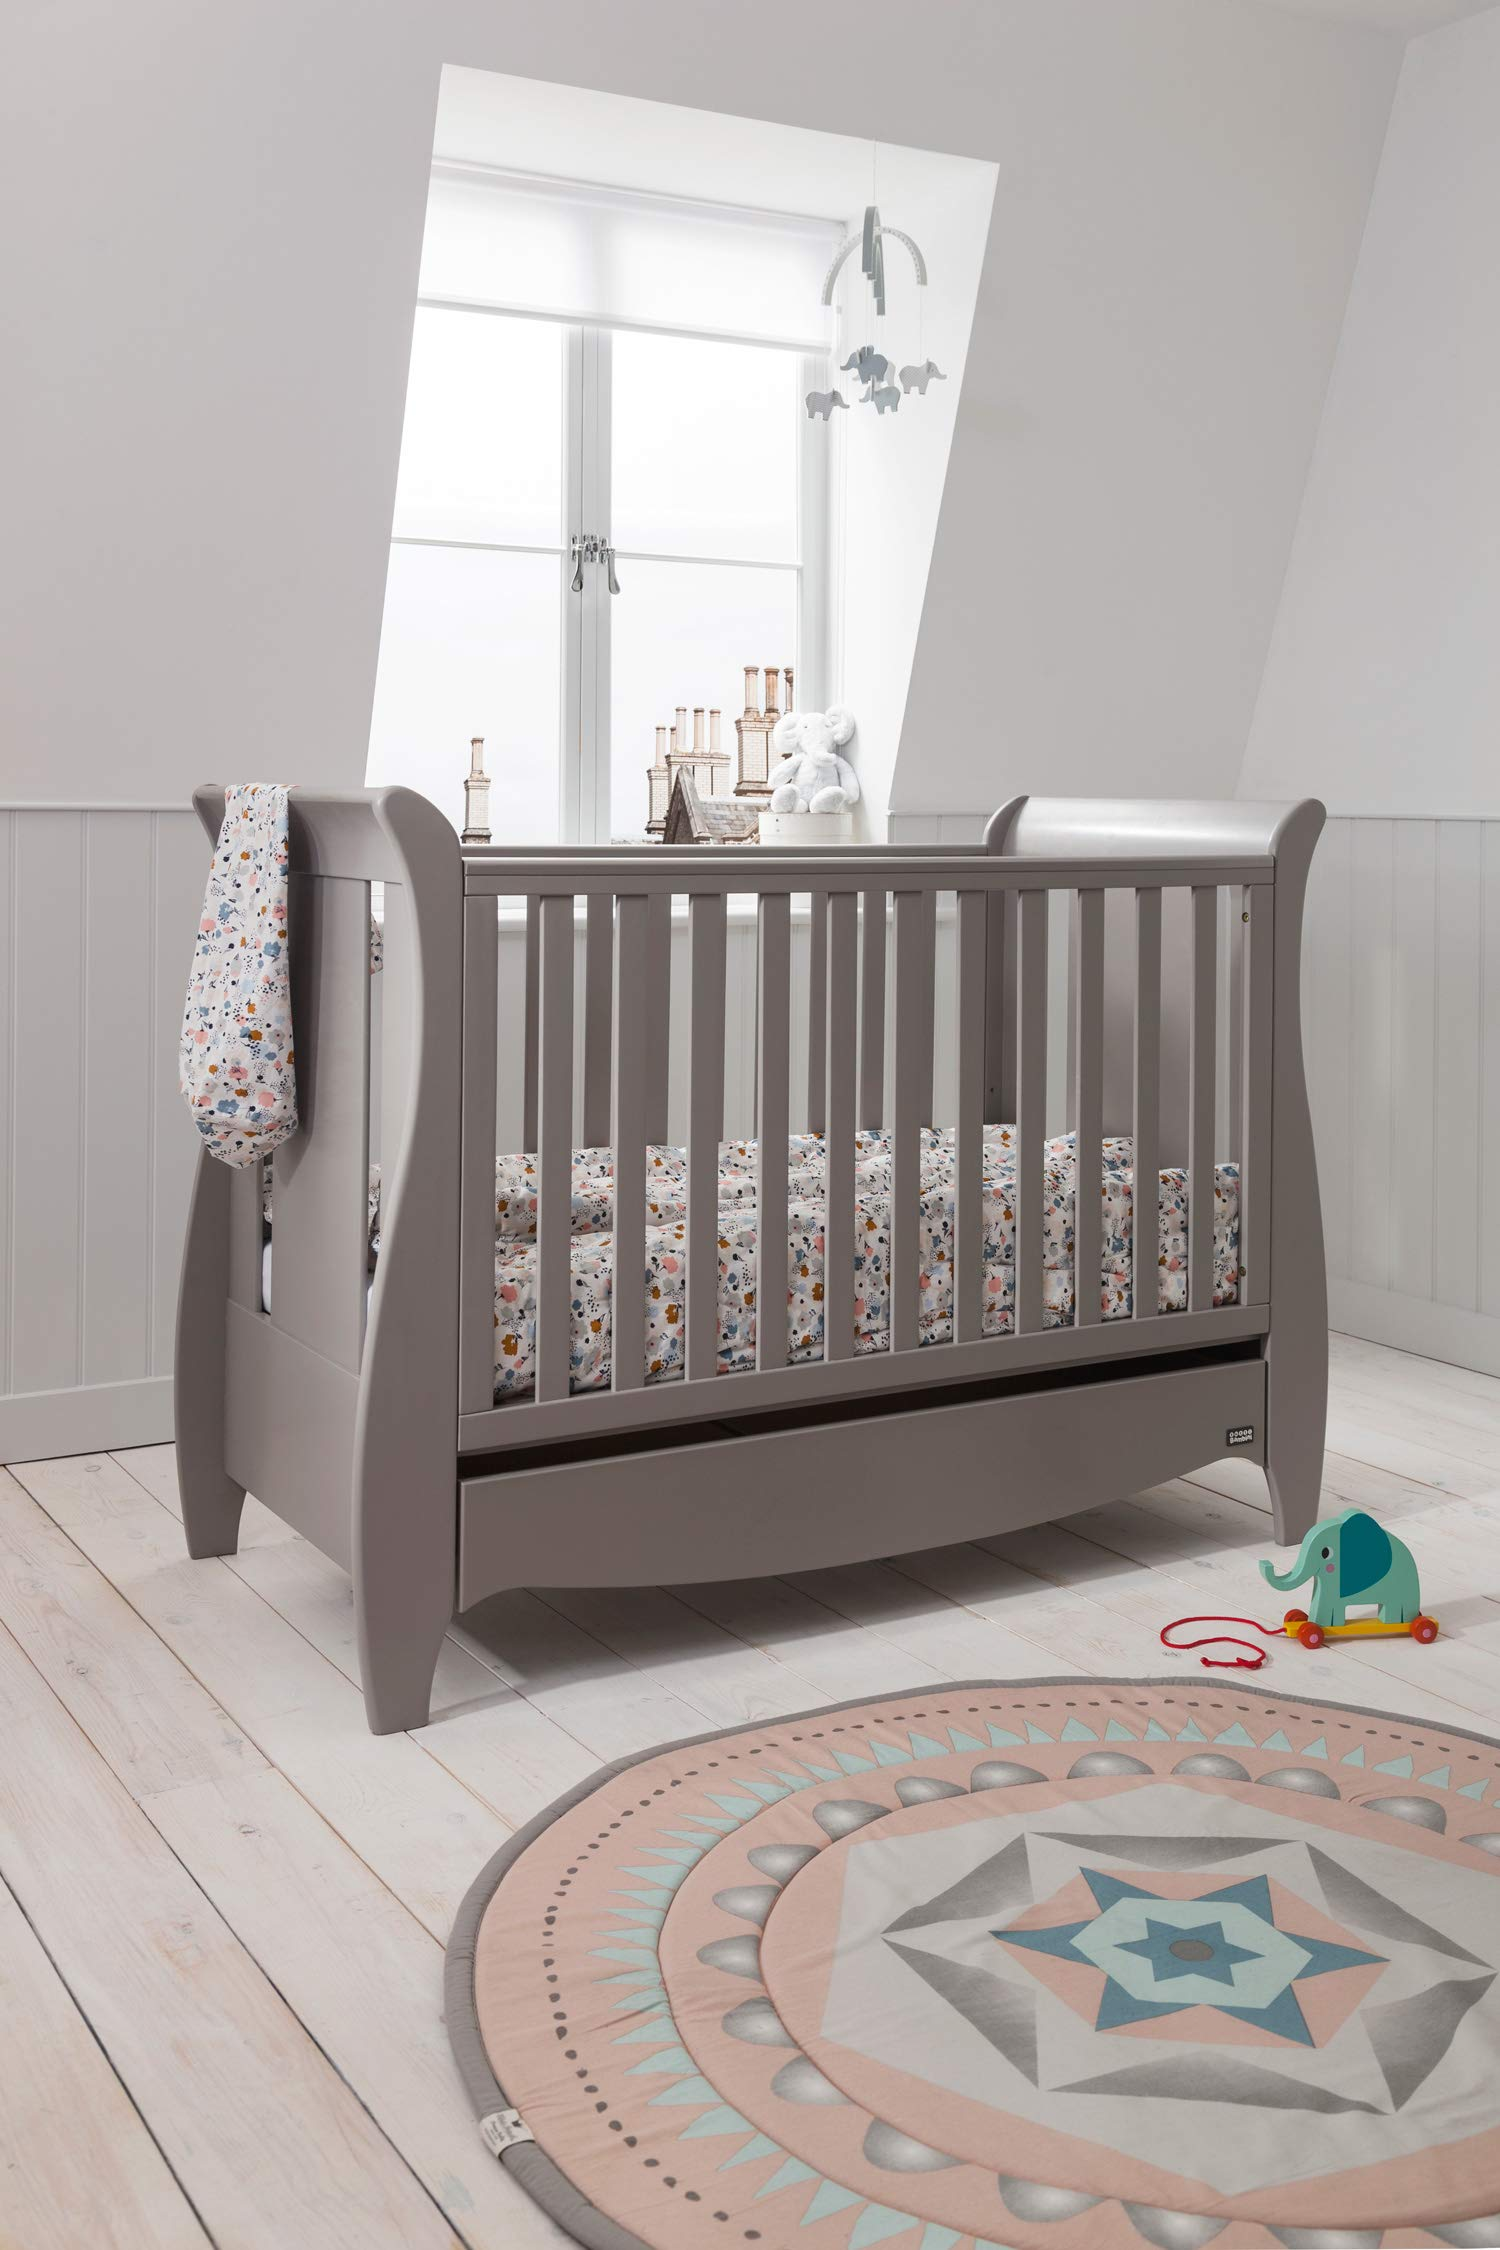 Tutti Bambini Roma Wooden Sleigh Cot Bed with Space Saver Under Bed Drawer - 120 x 60cm 3 Adjustable Positions (Truffle Grey) Tutti Bambini BIRTH TO 4 YEARS - Can be used as a Cot Bed from birth and then converted into a sofa or junior bed suitable up to 4 years ADJUSTABLE BASE - Three position adjustable mattress base, allowing easy access to little ones UNDER BED DRAWER - Classic sleigh design with under-bed drawer for extra storage, available in White or Espresso finish 4